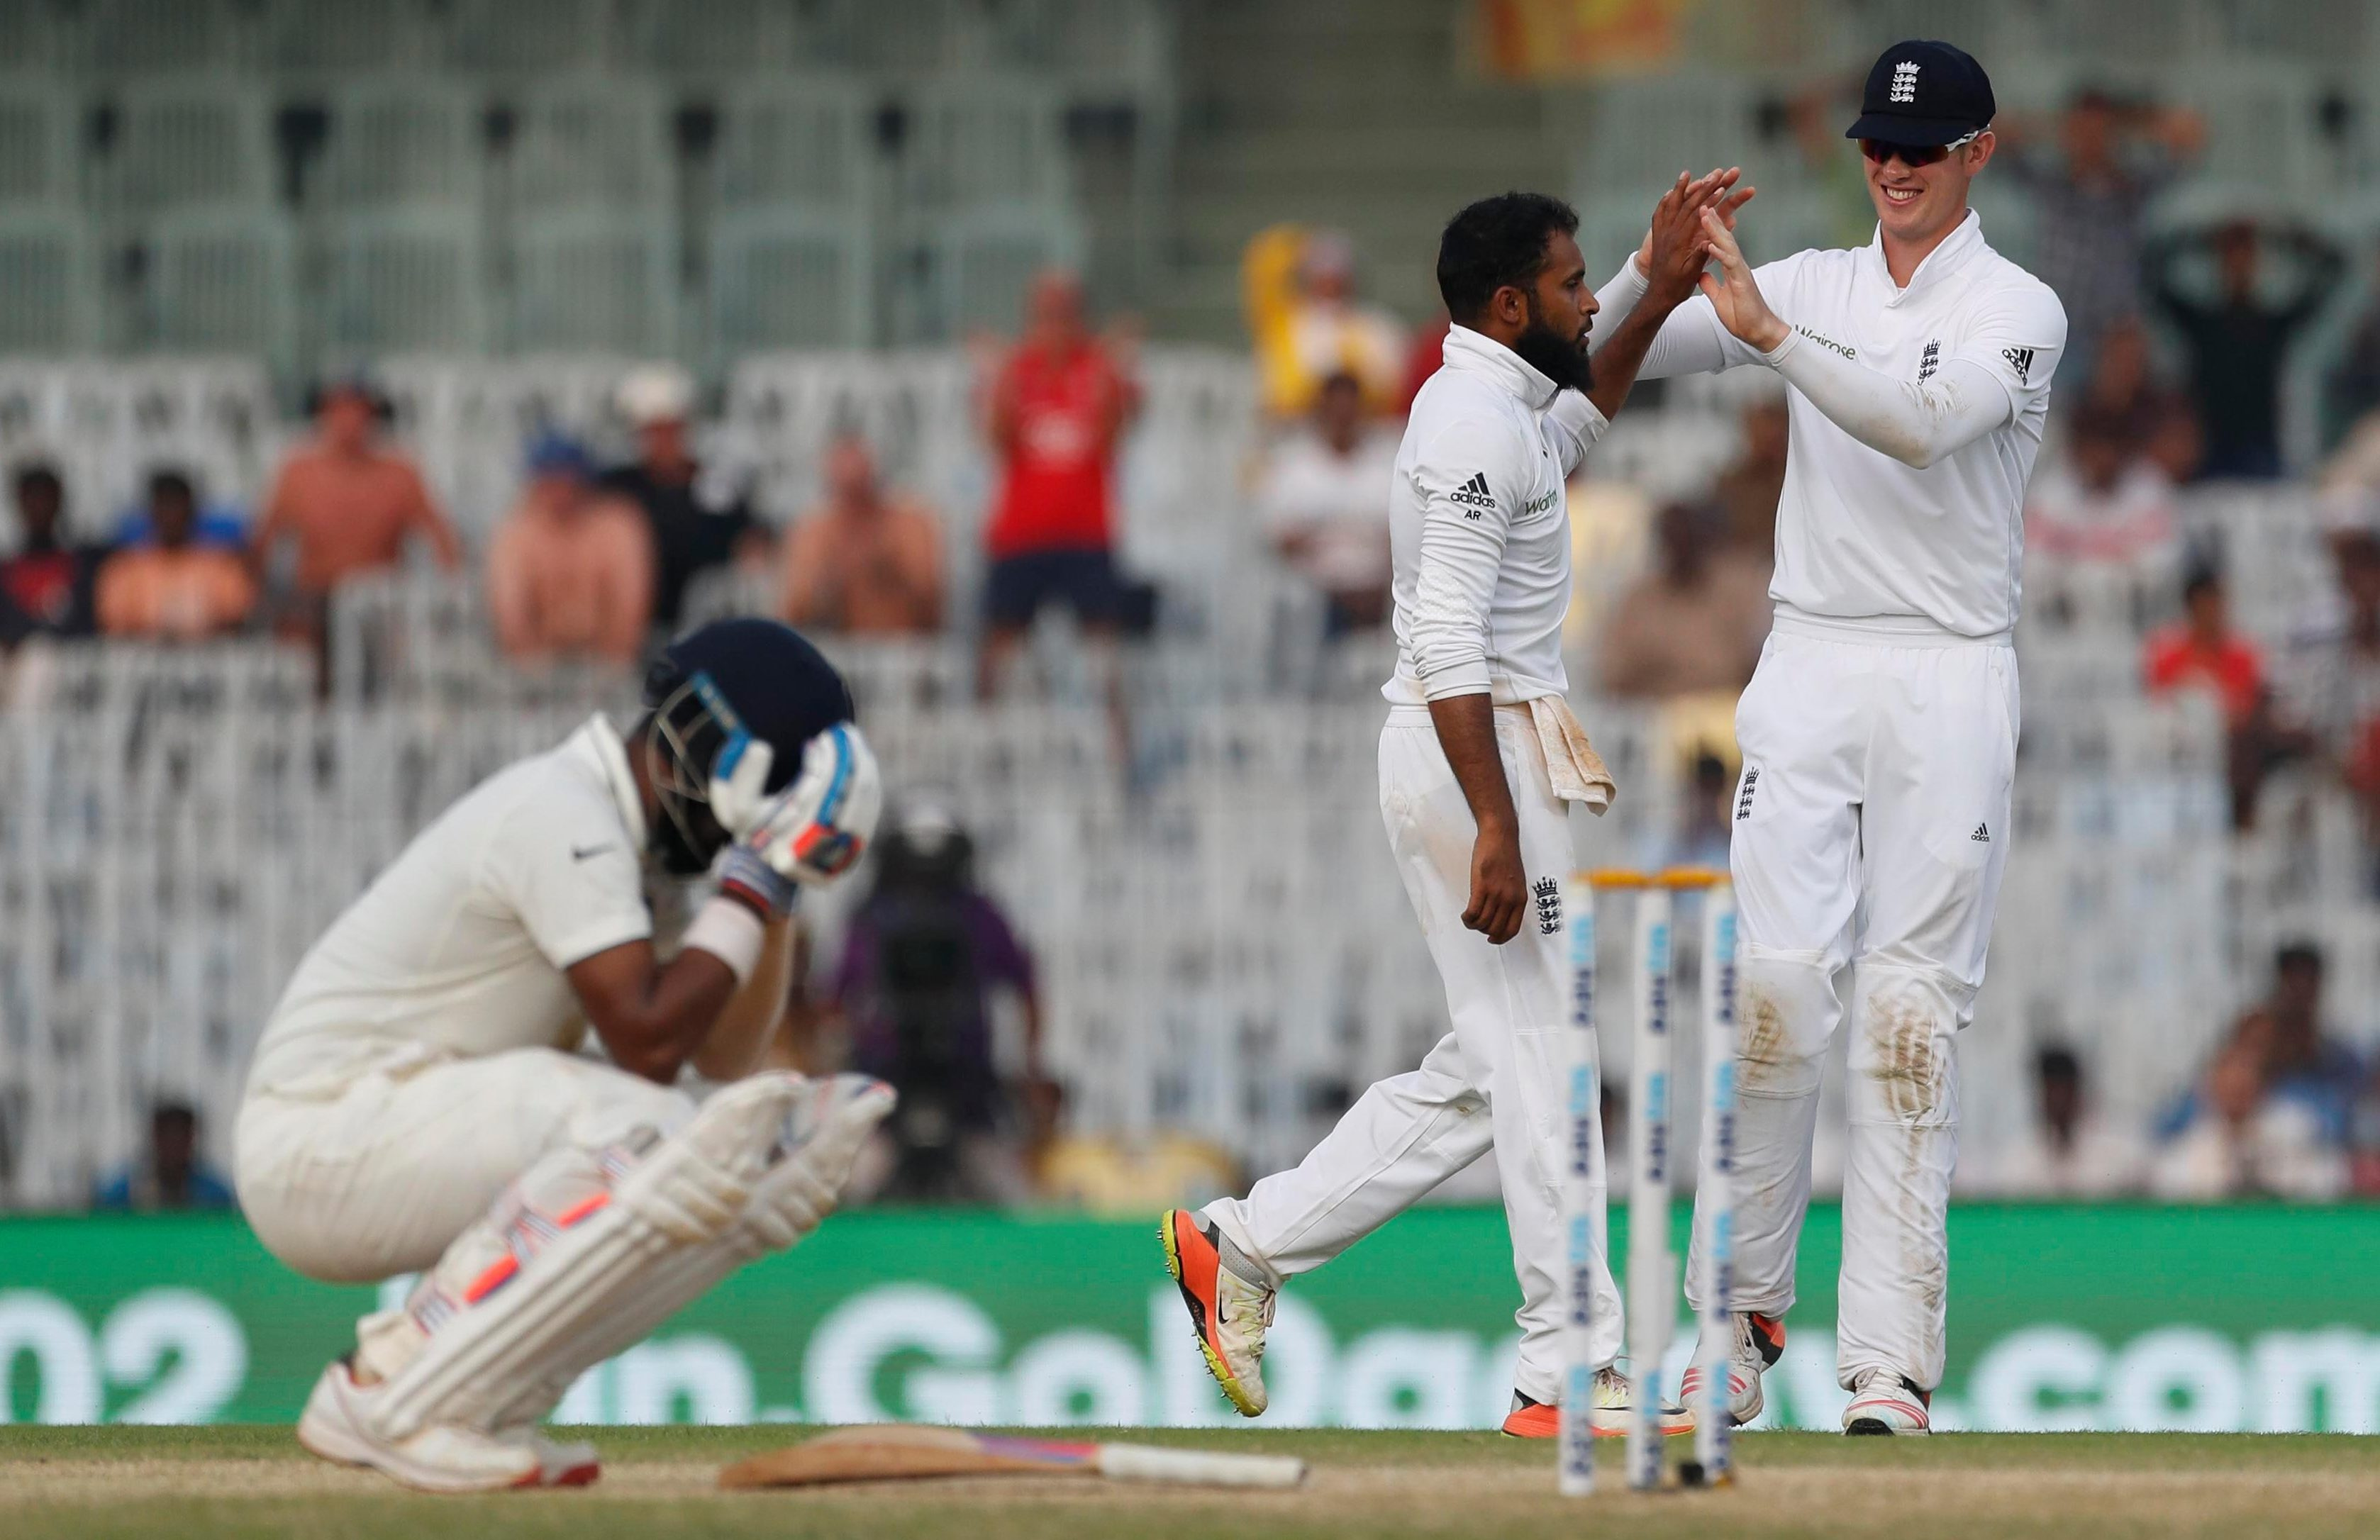 Adil Rashid has played ten Tests for England, taking 38 wickets at 42.78